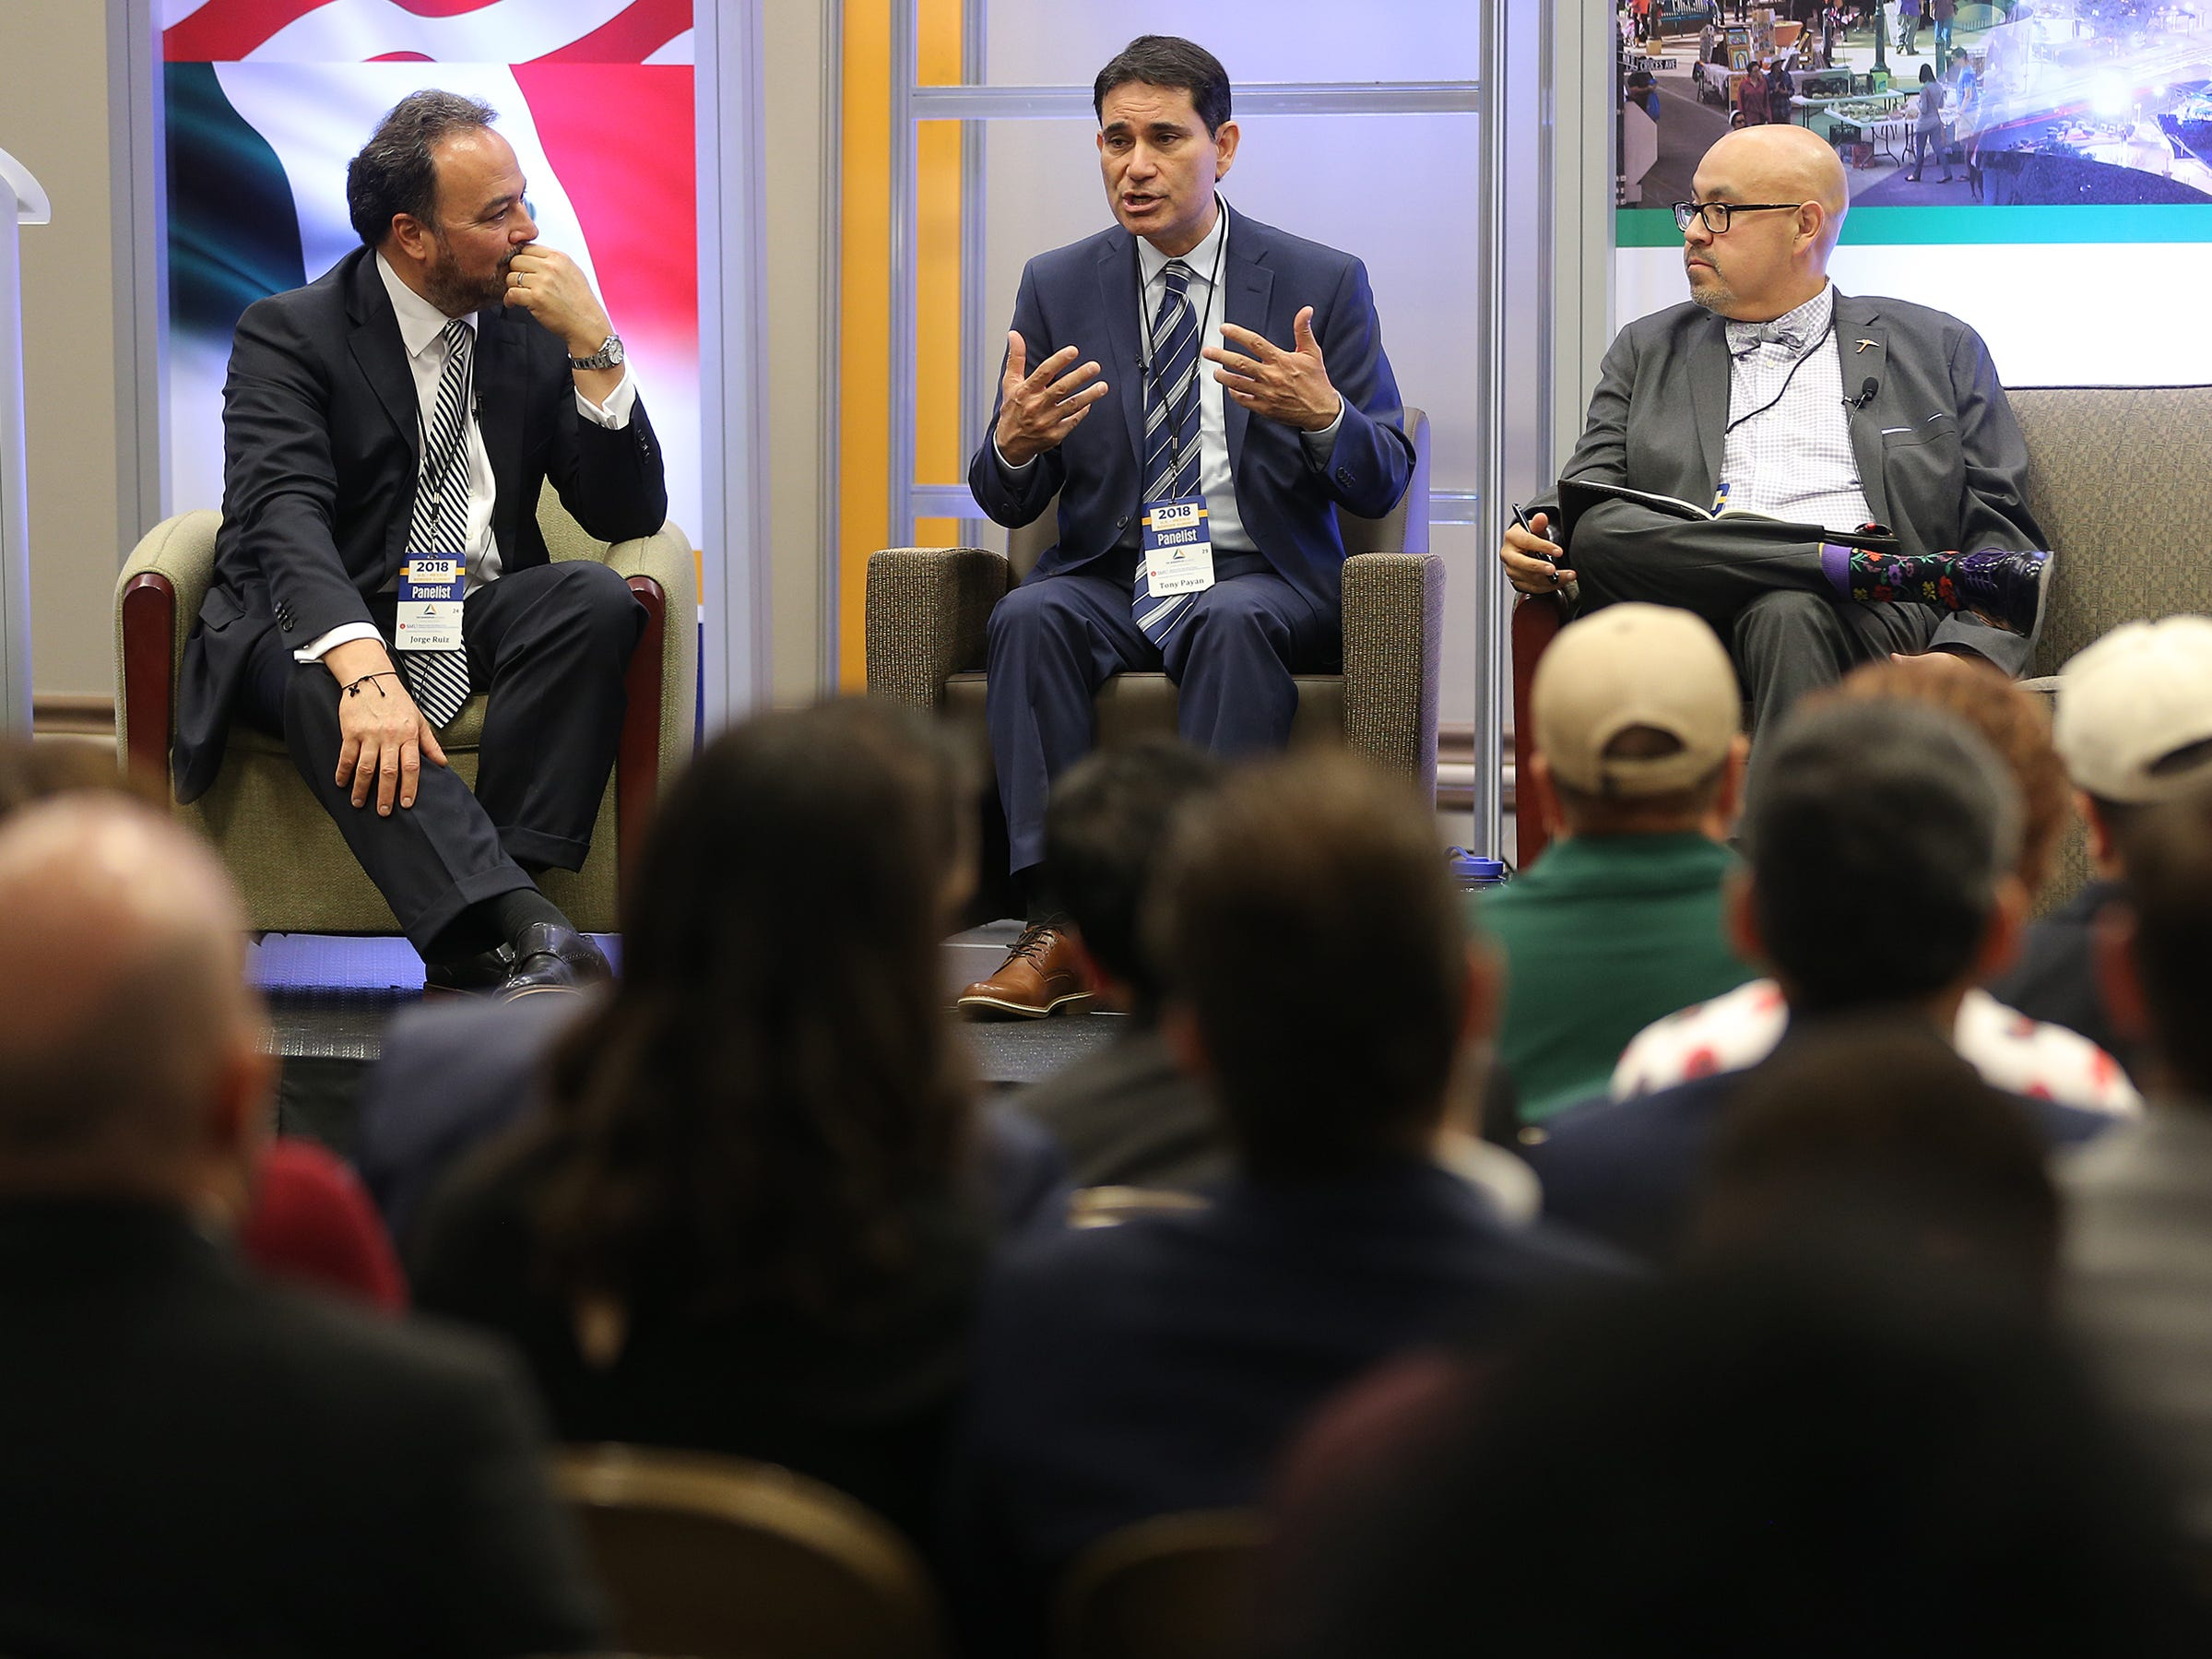 Jorge Ruiz, left, moderator of the panel 'What's Next? The Future of U.S.-Mexico Relations,' listens with Richard Pineda, right, as Tony Payan, Director of the Mexico Center at the Baker Institue at Rice University, makes a point on NAFTA during the U.S.-Mexico Border Summit Wednesday